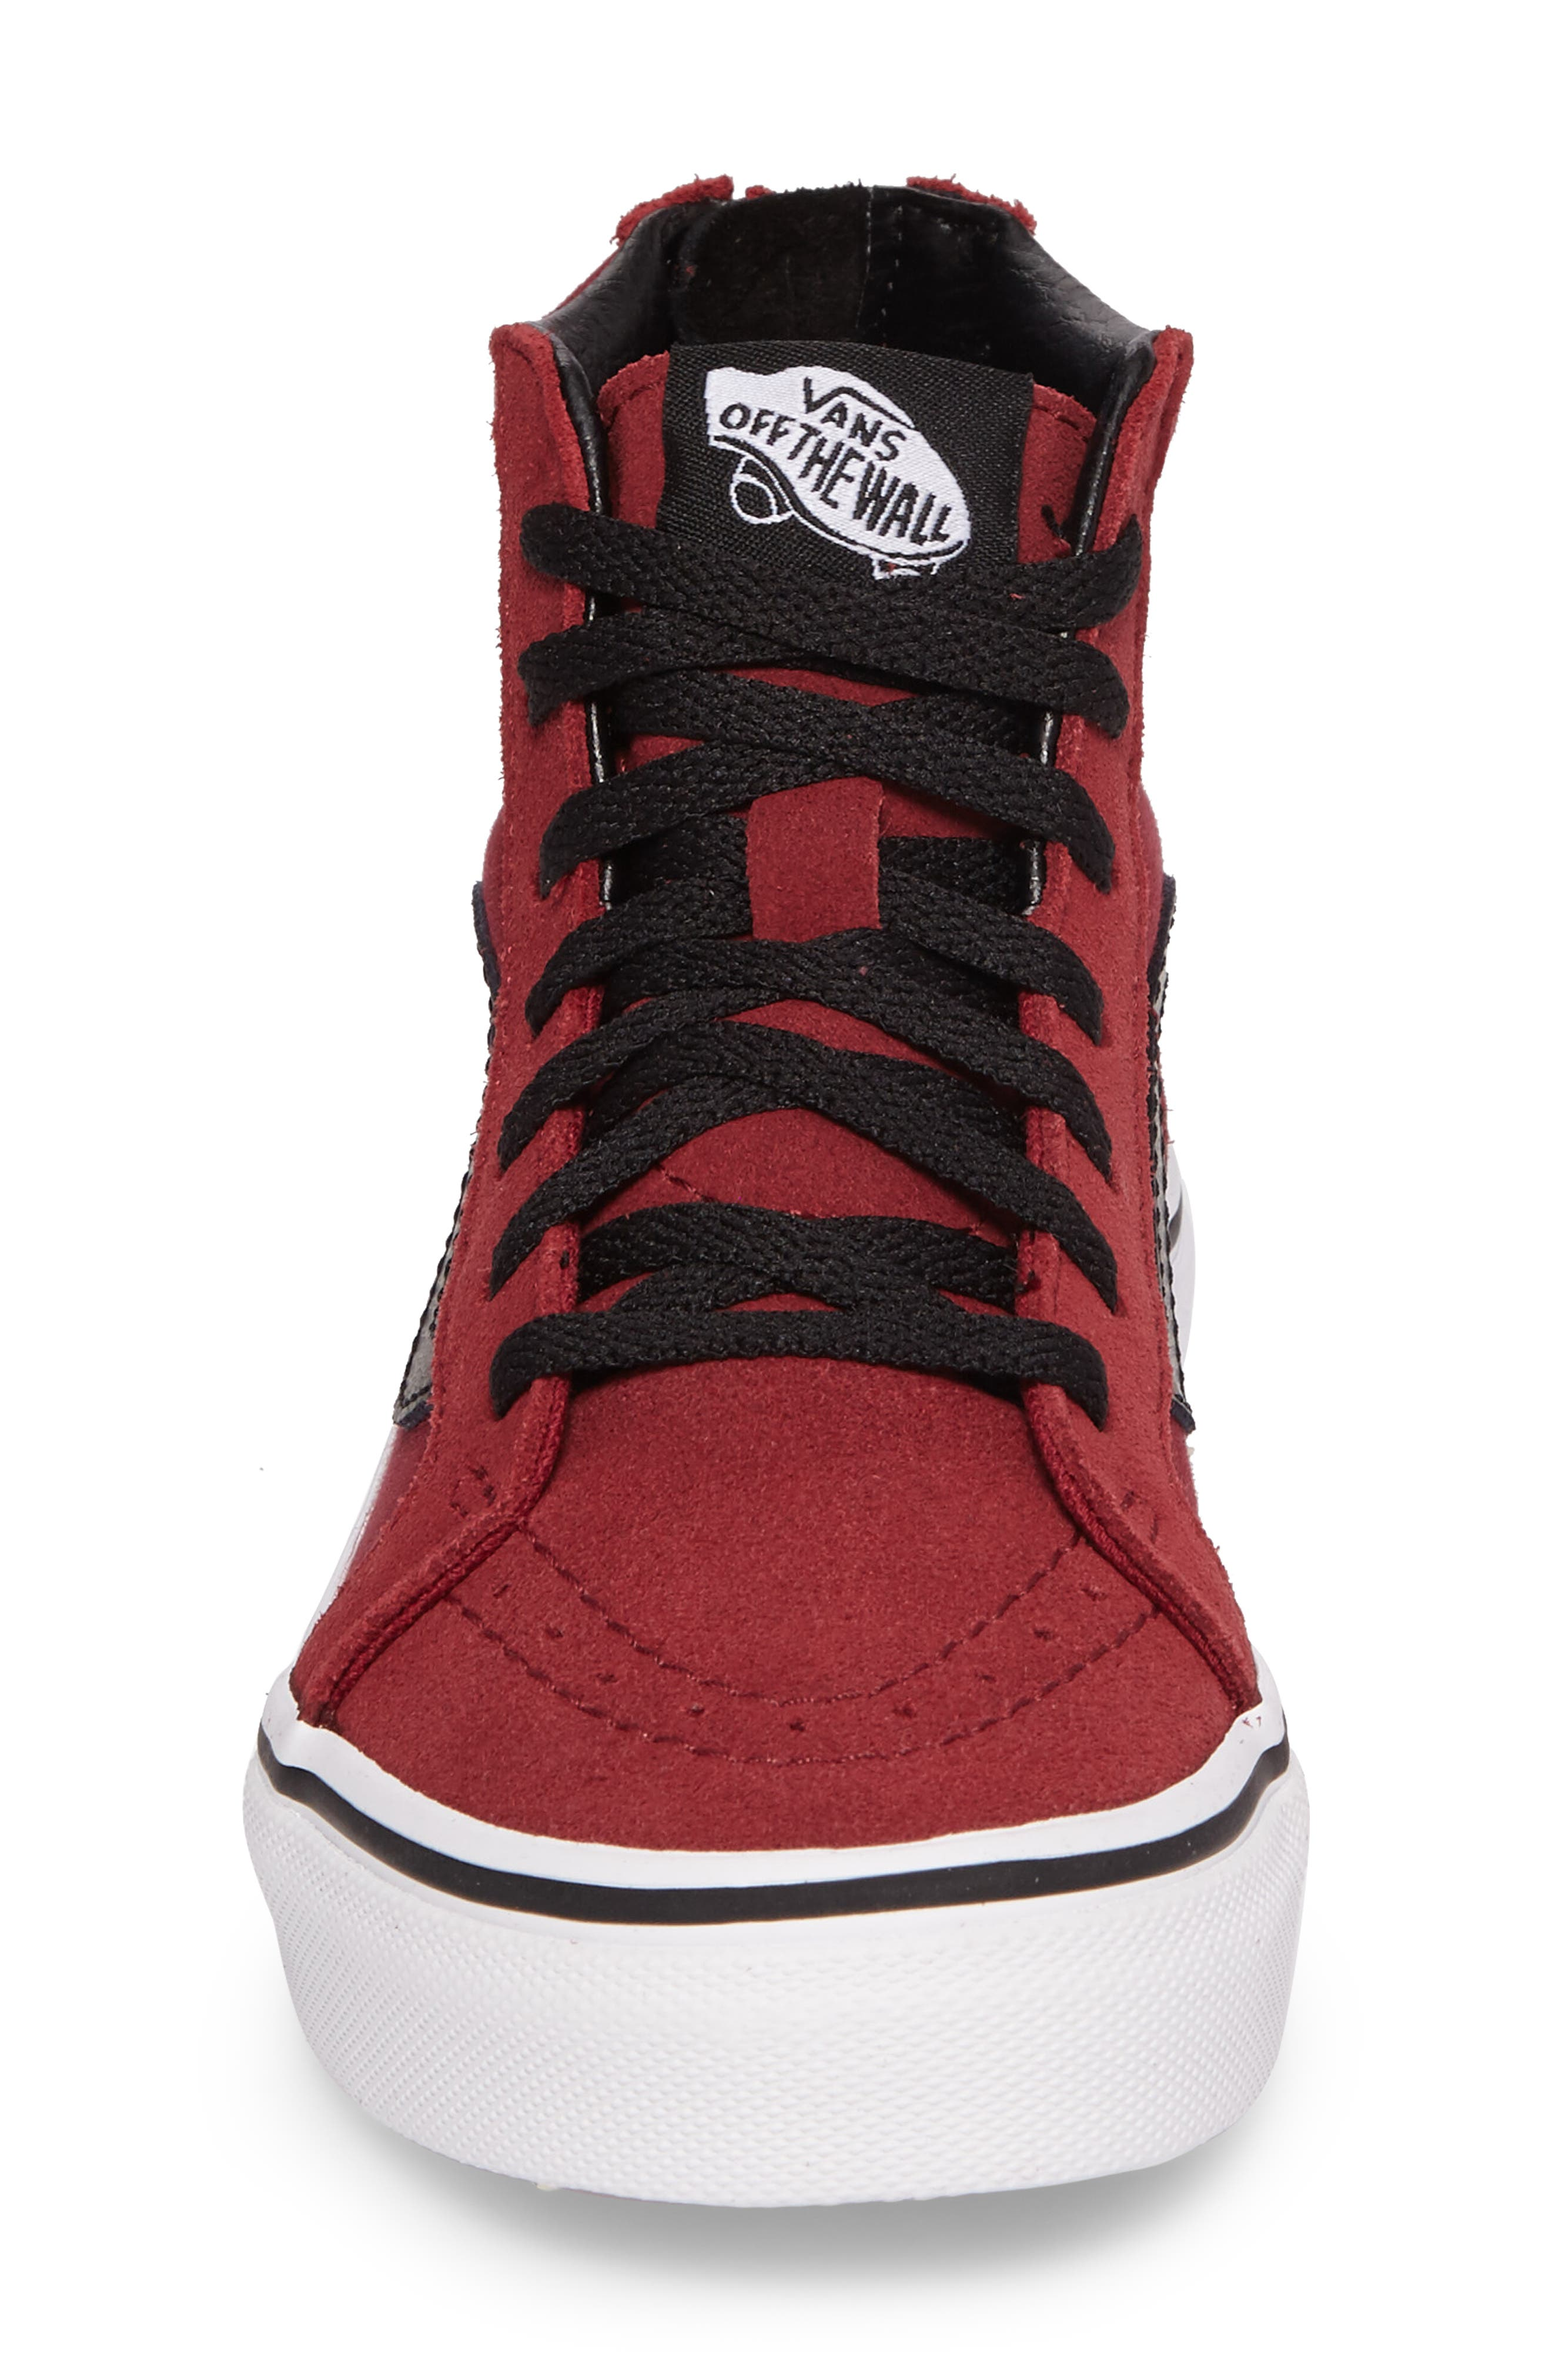 SK8-Hi Zip Sneaker,                             Alternate thumbnail 4, color,                             TIBETAN RED/ BLACK